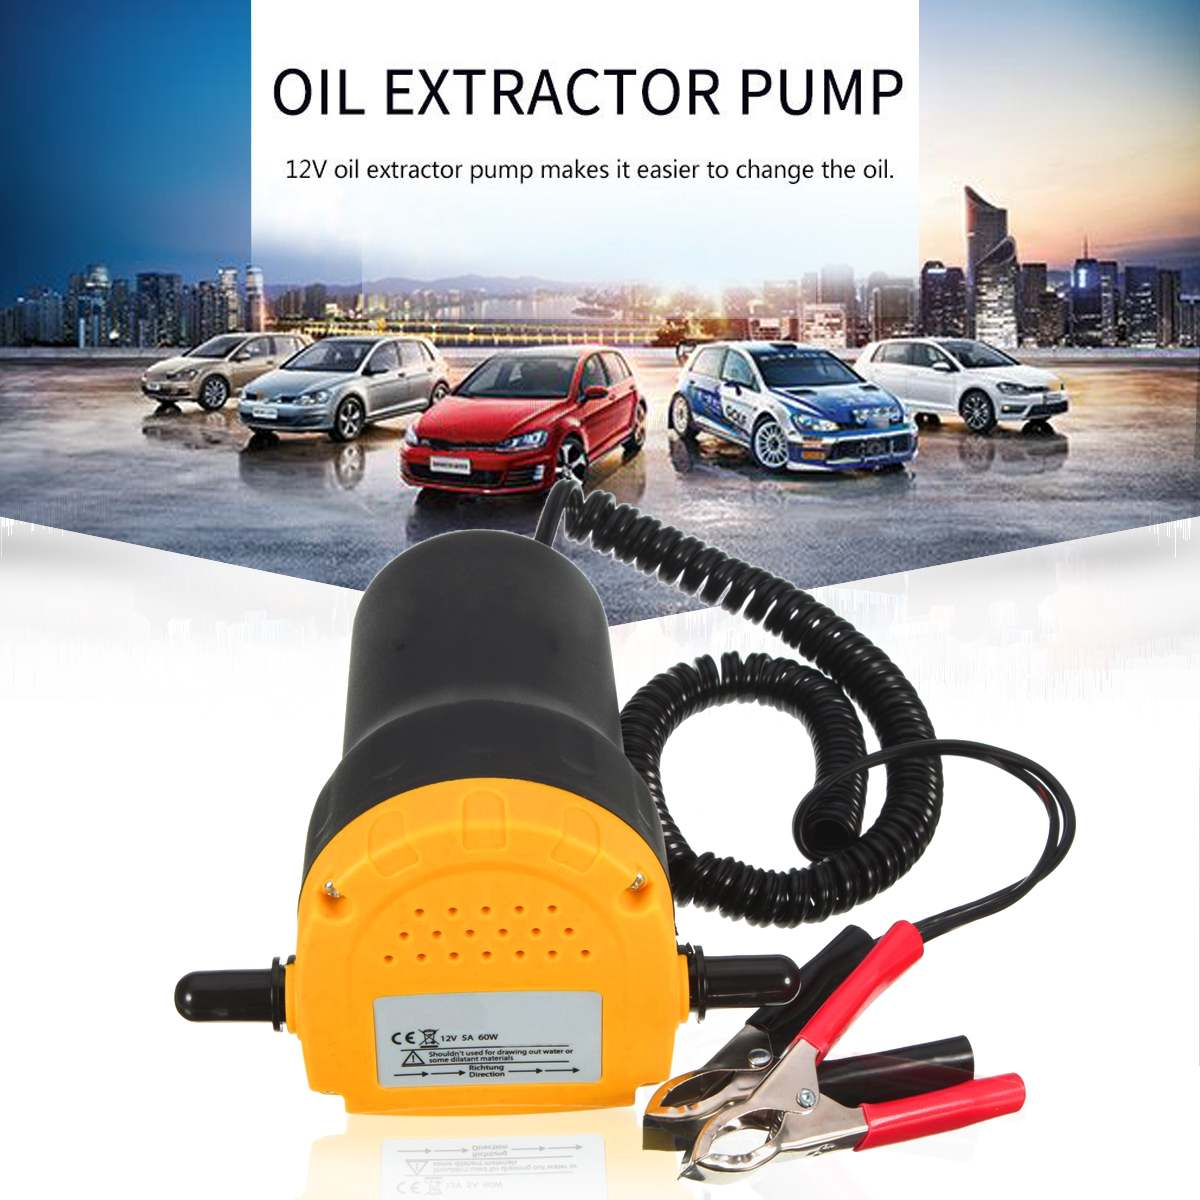 12V Oil for Diesel Fluid Extractor Transfer Pump  Oil Extractor Transfer pump for Electric Motor Bike12V Oil for Diesel Fluid Extractor Transfer Pump  Oil Extractor Transfer pump for Electric Motor Bike